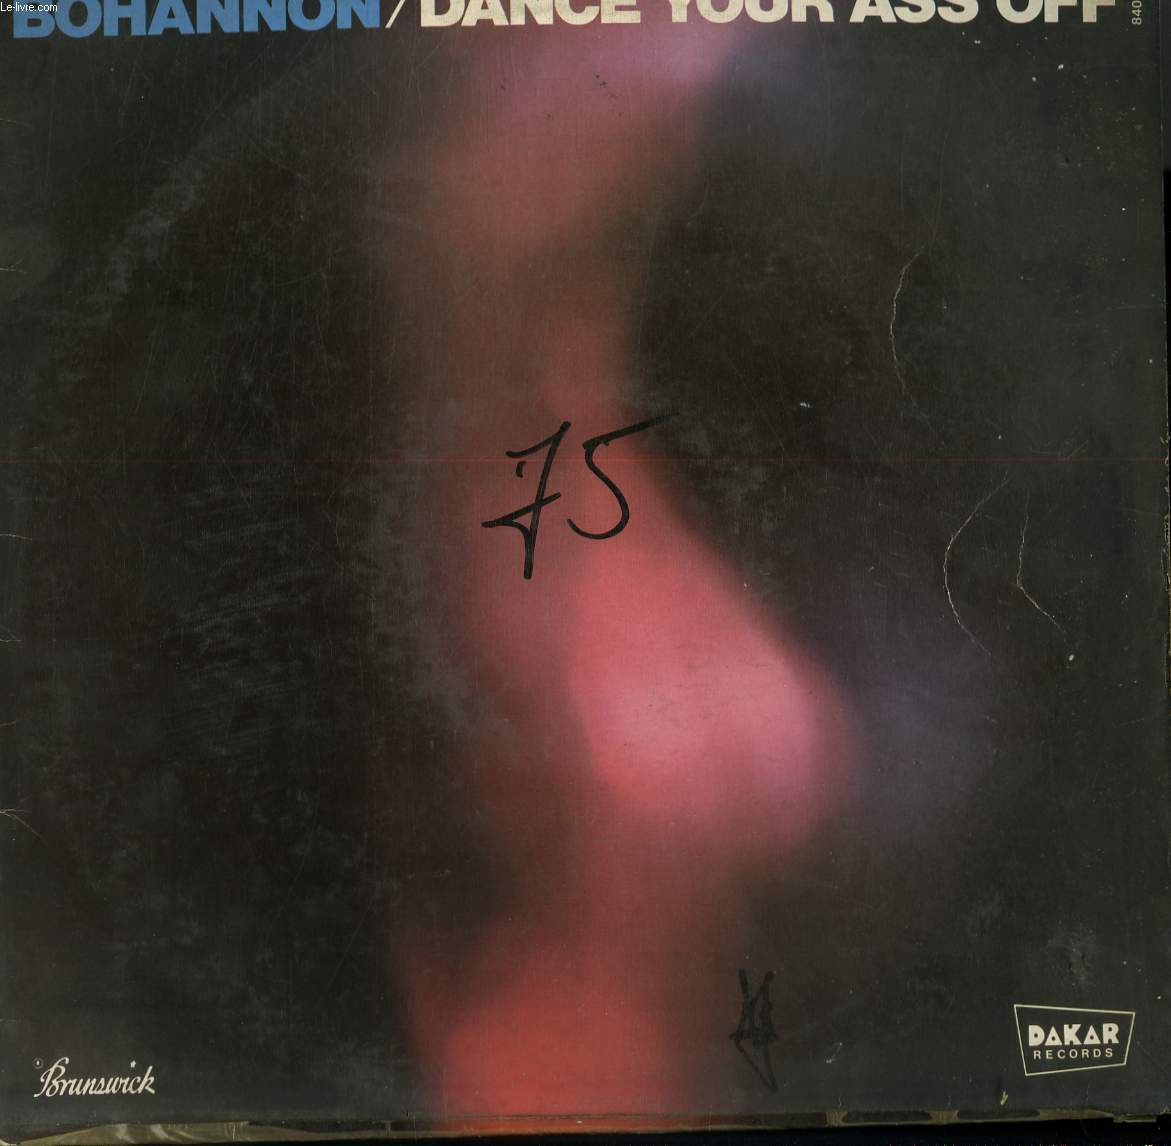 DISQUE VINYLE 33T DANCE YOUR ASS OFF / THE GROVE I FEEL / ZULU / PARTY PEOPLE / TRYING TO BE SLICK / SPREAD THE GROOVE AROUND / BOHANNON'S THEME.